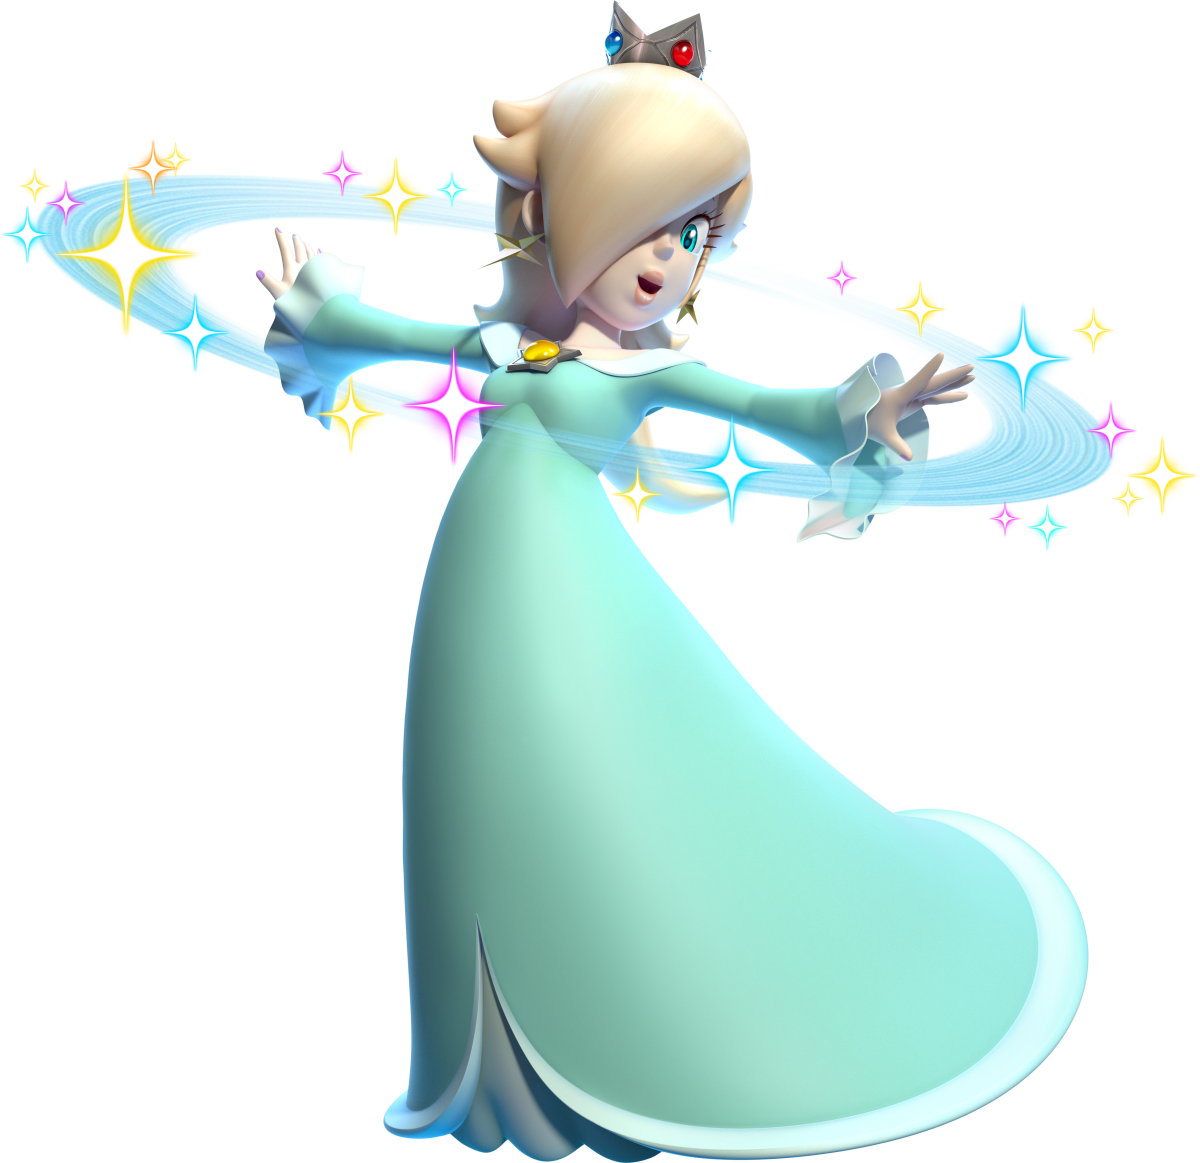 Is Rosalina Peach's Daughter? How the Reshuffle Theory Of The Mario Universe Makes Sense With The Franchise